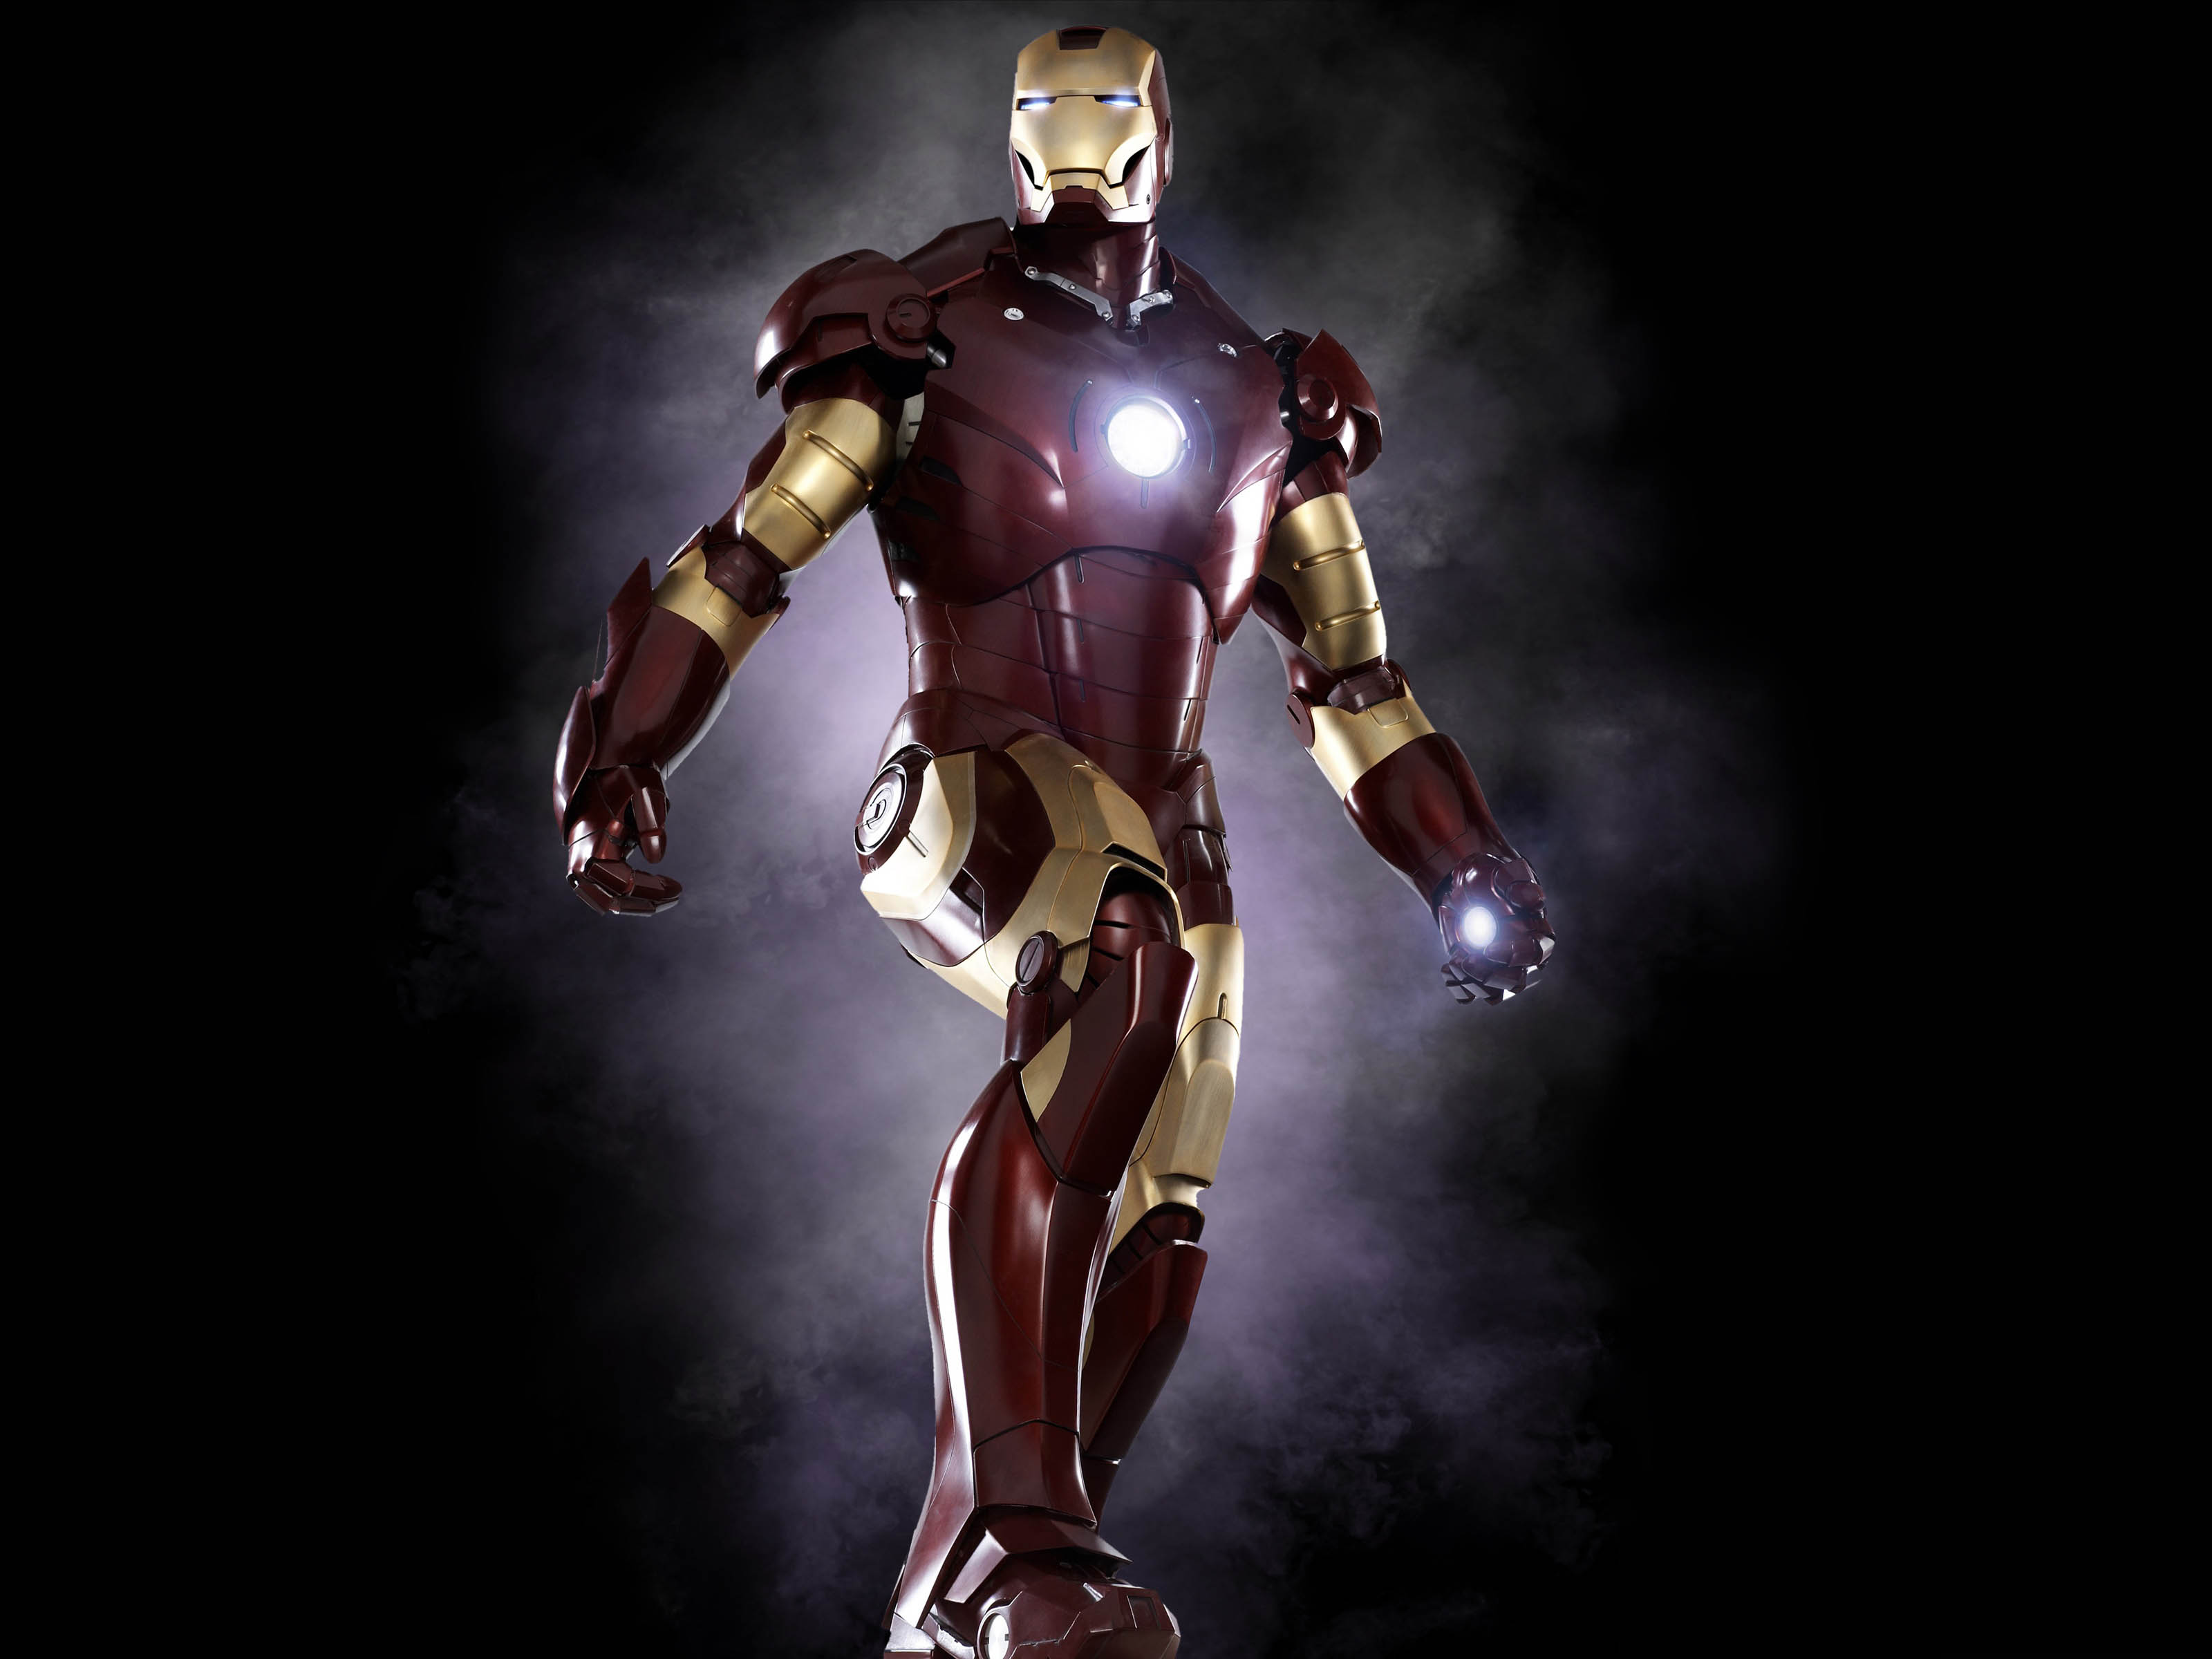 iron man 3 full hd wallpaper and background image | 3200x2400 | id